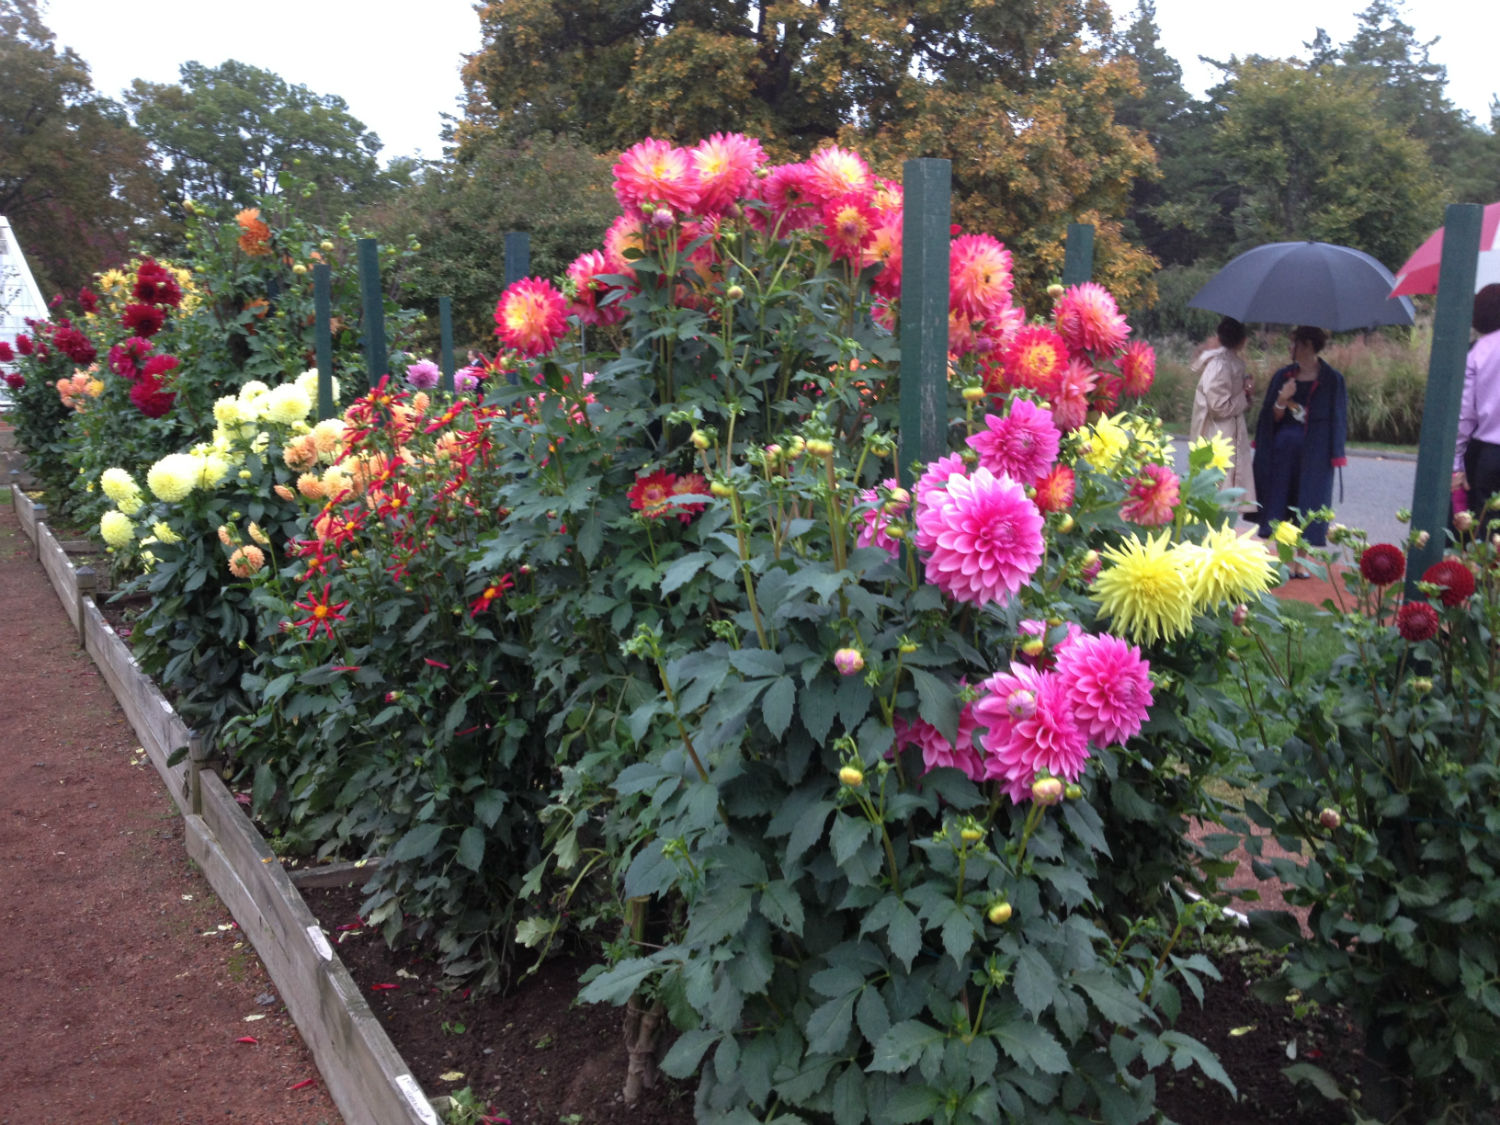 Broad View of Elizabeth Park Dahlia Garden